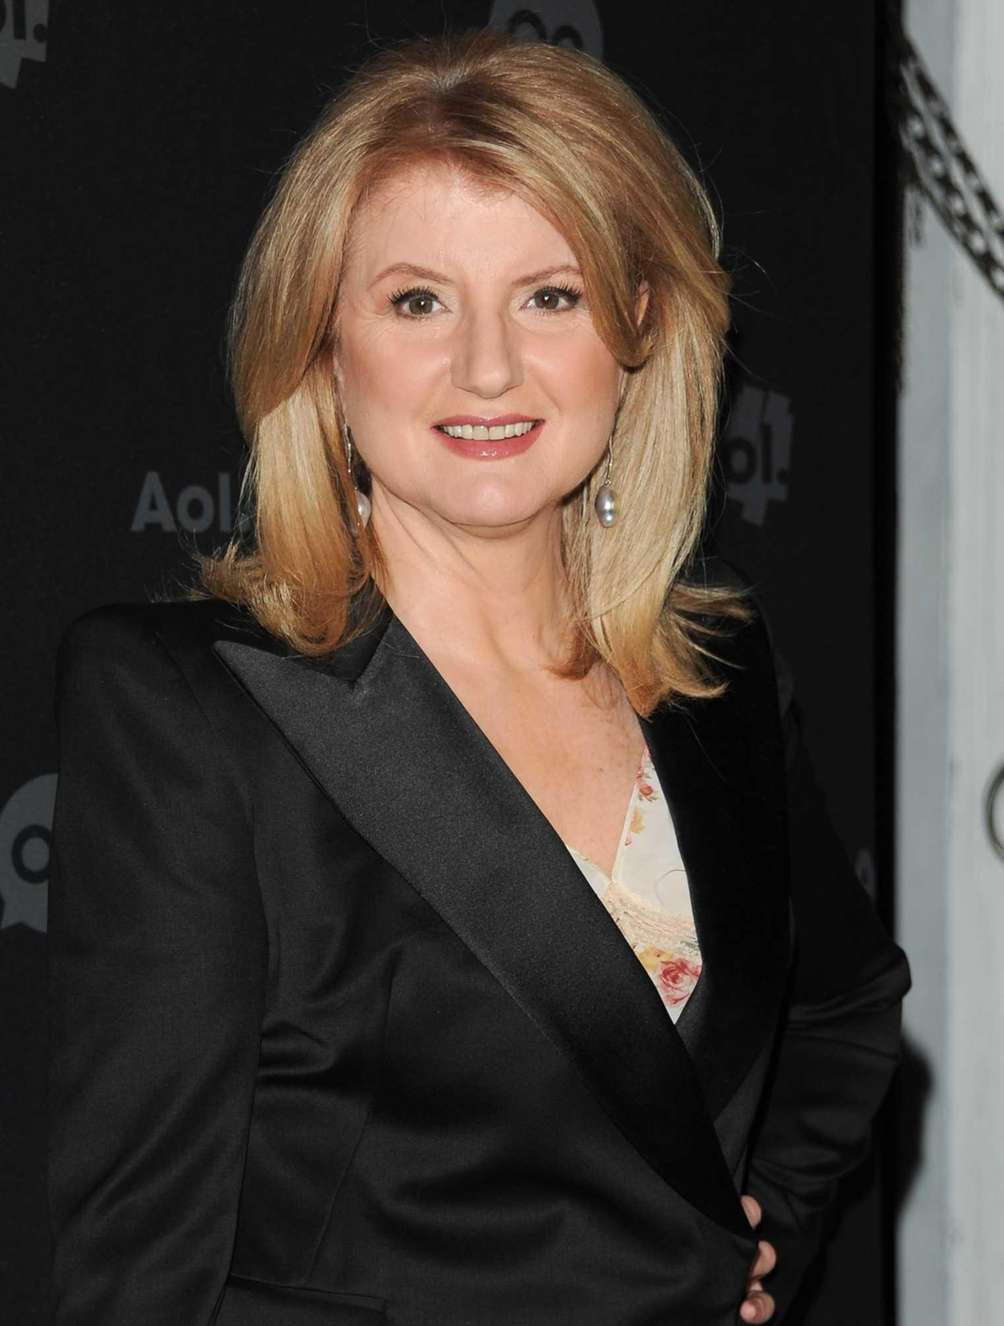 Arianna Huffington was born in Athens. She became